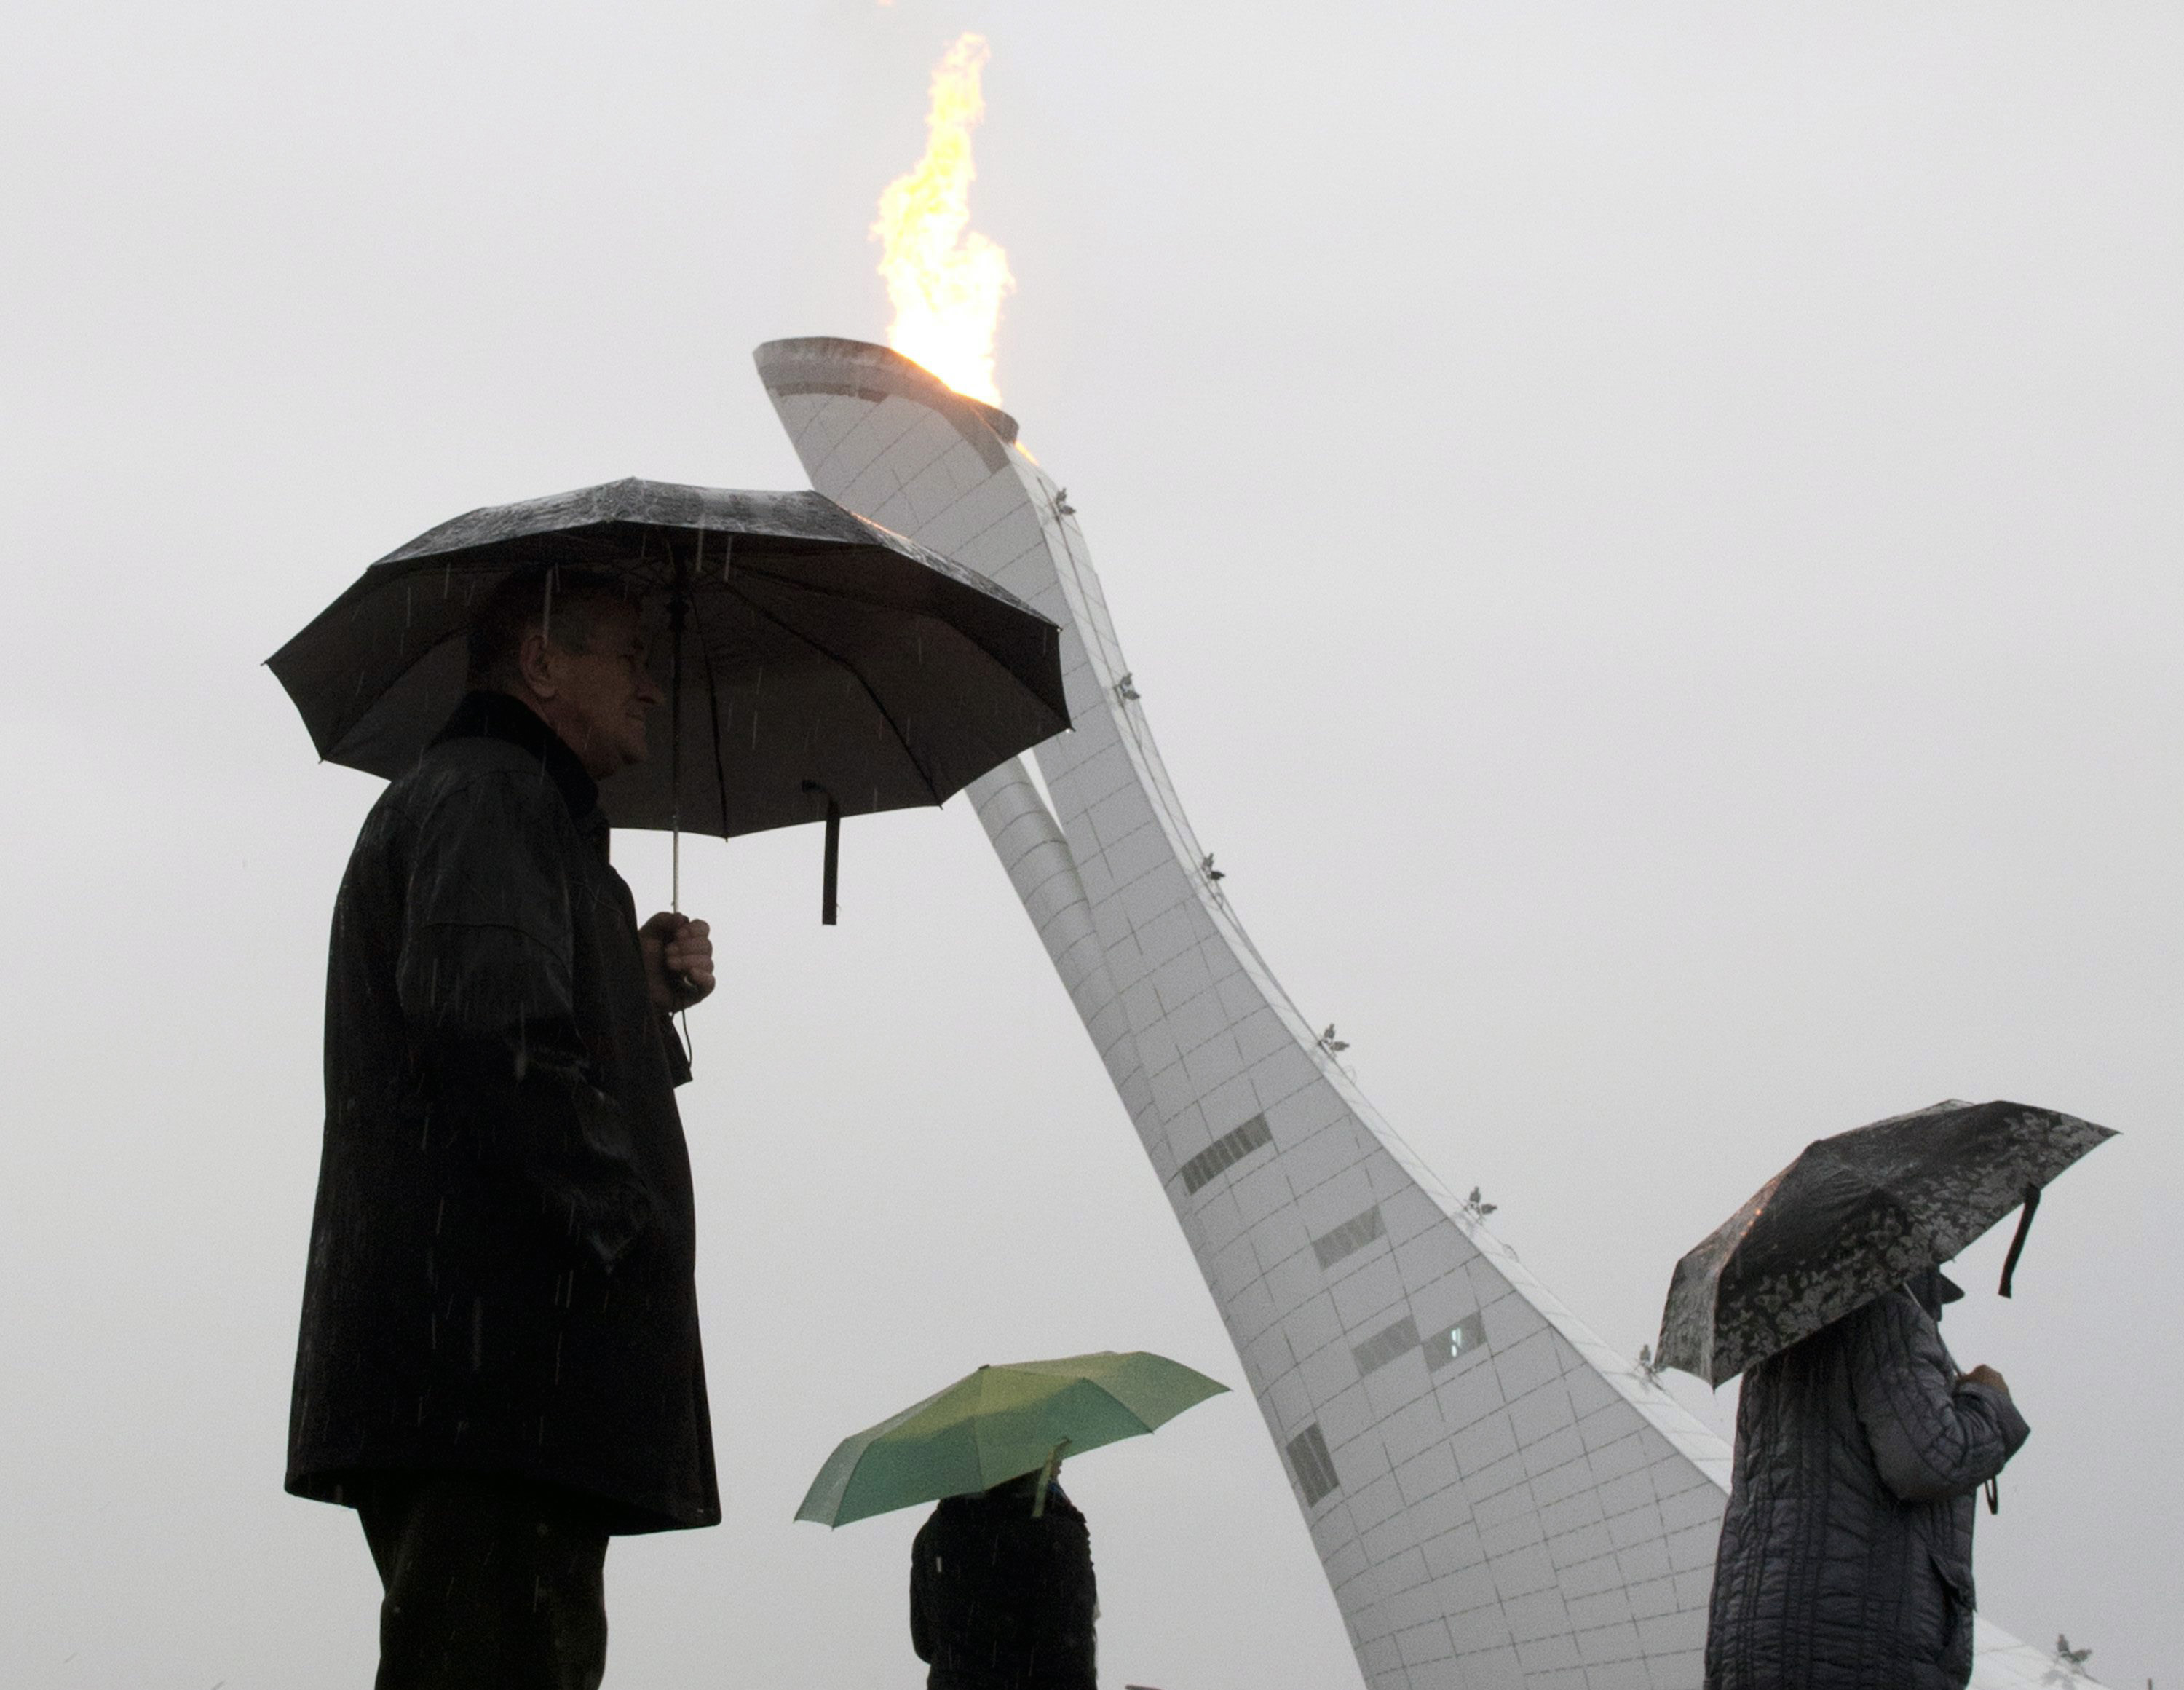 Visitors to the Olympic park walk past the Olympic cauldron as it rains at the Sochi Winter Olympics.